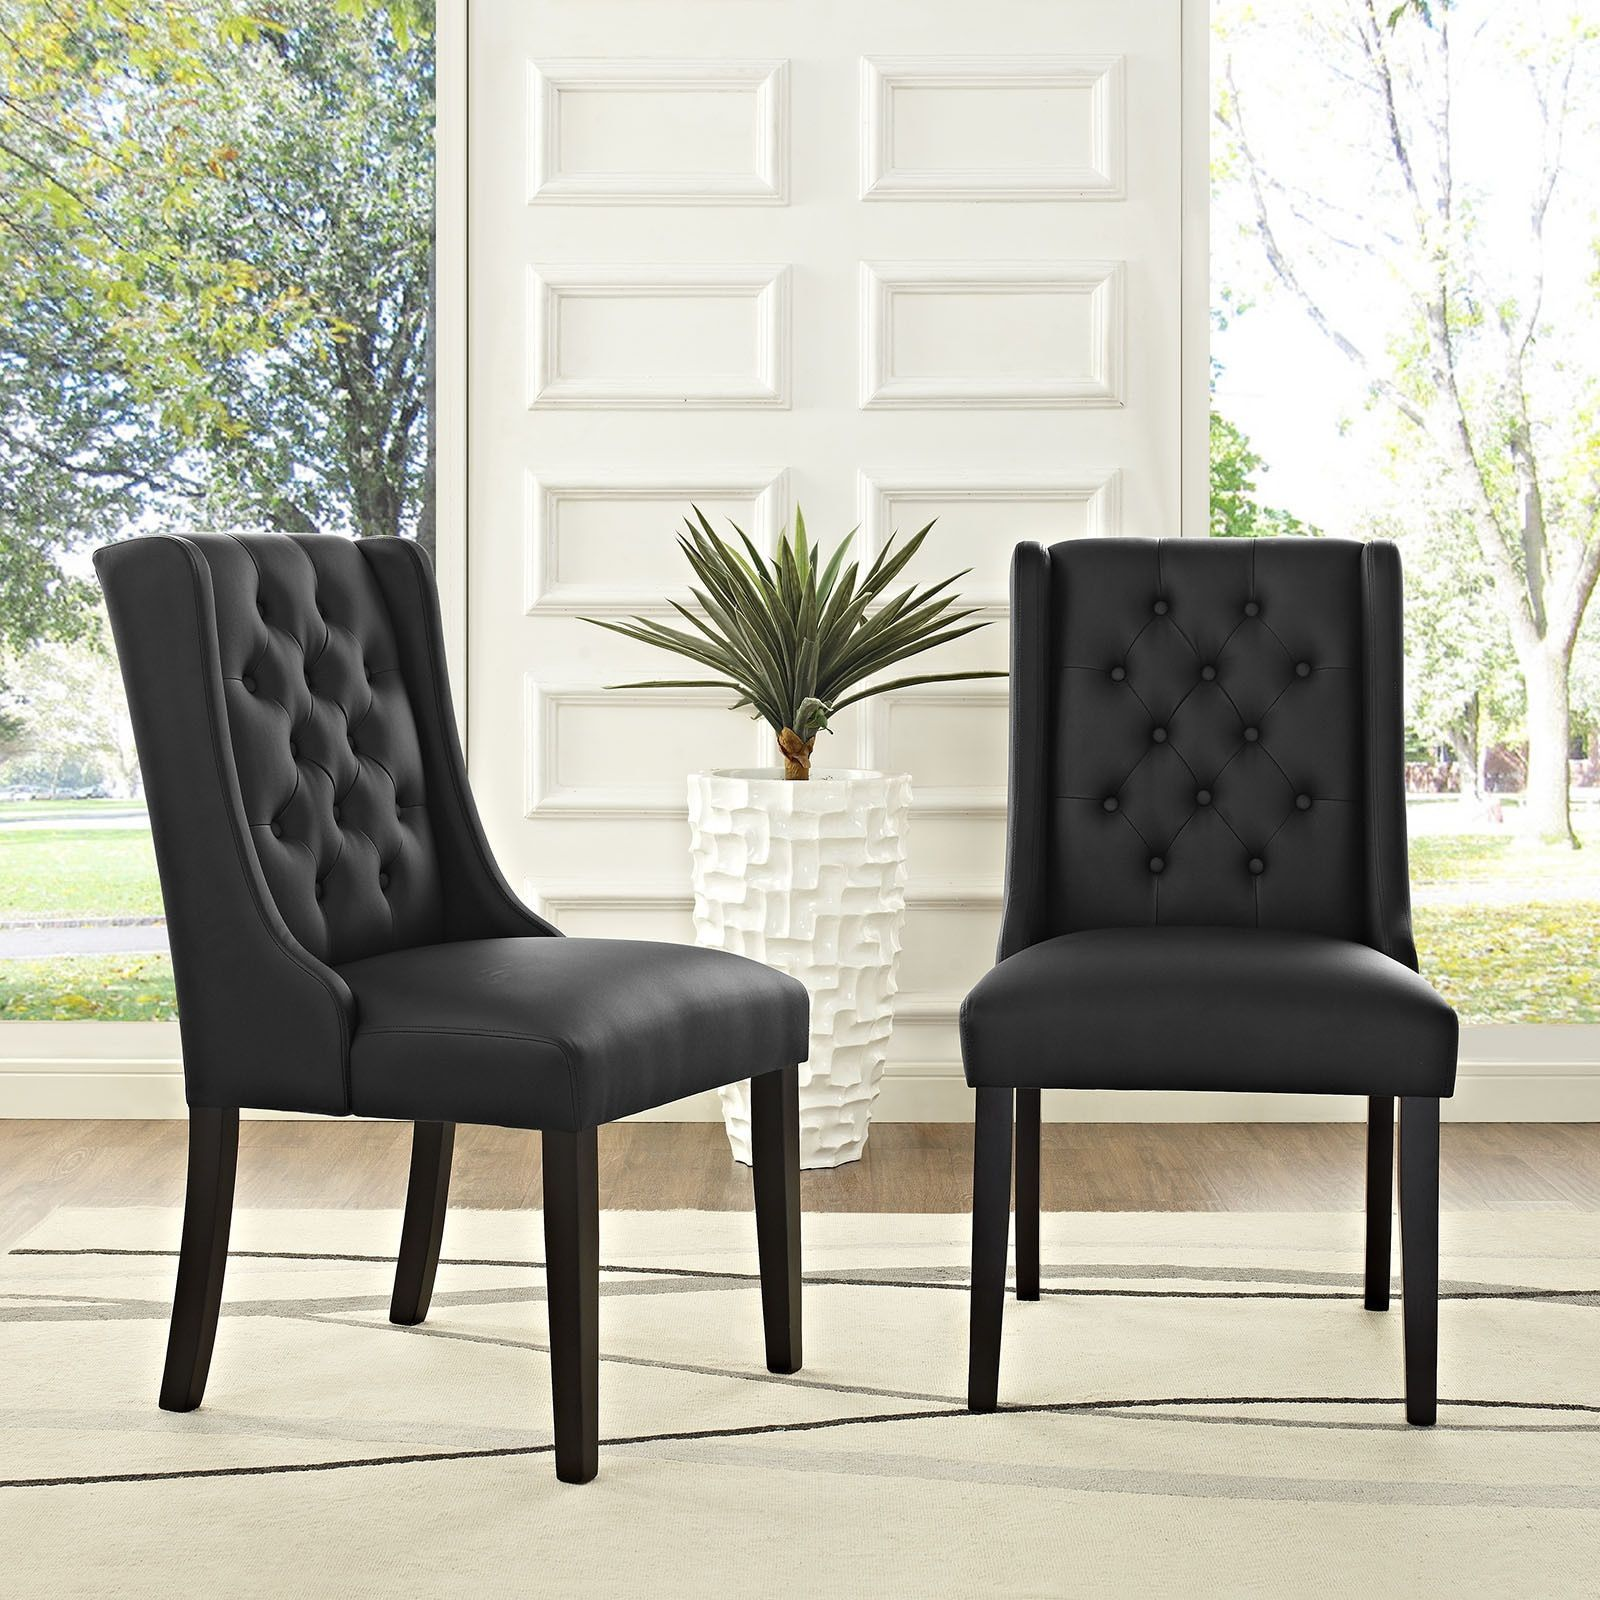 Baronet Vinyl Dining Chair In 2020 Upholstered Dining Chairs